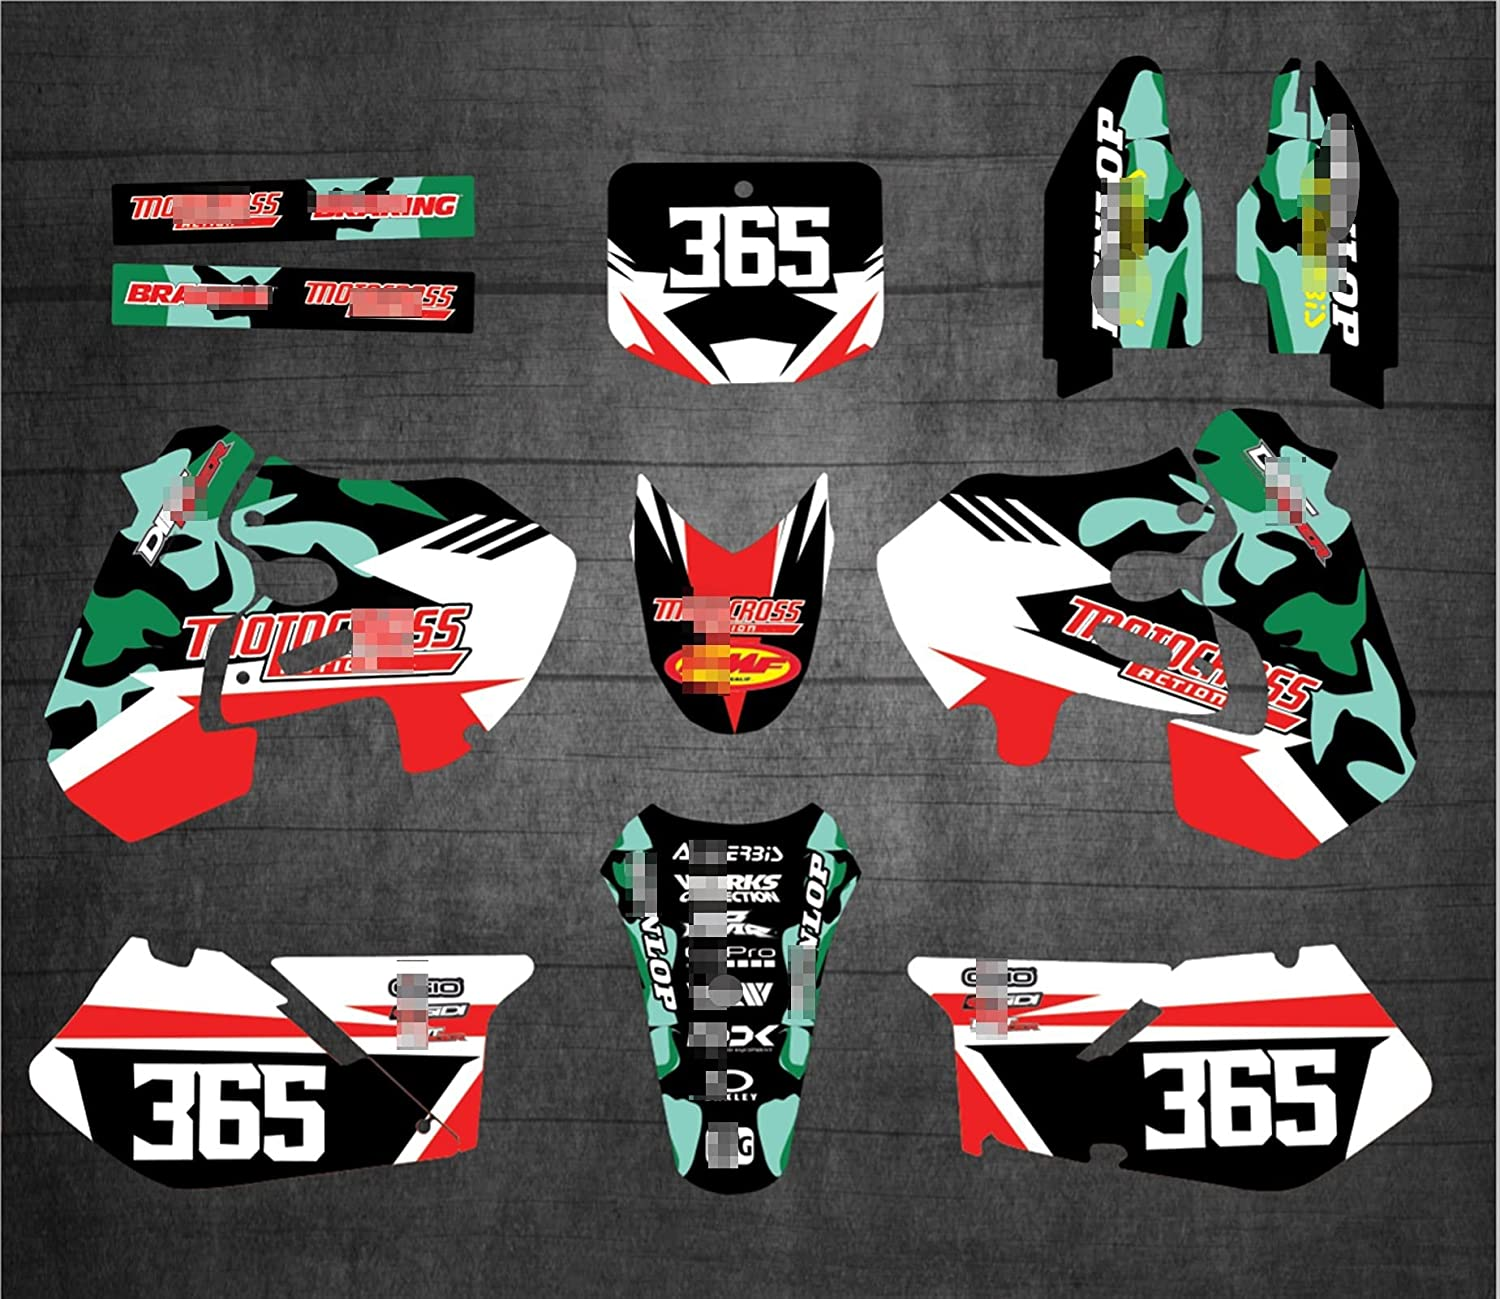 YHYPRESTER XYTZ253-2 Customized 3M security Gr Decals Stickers Max 59% OFF Motorcycle